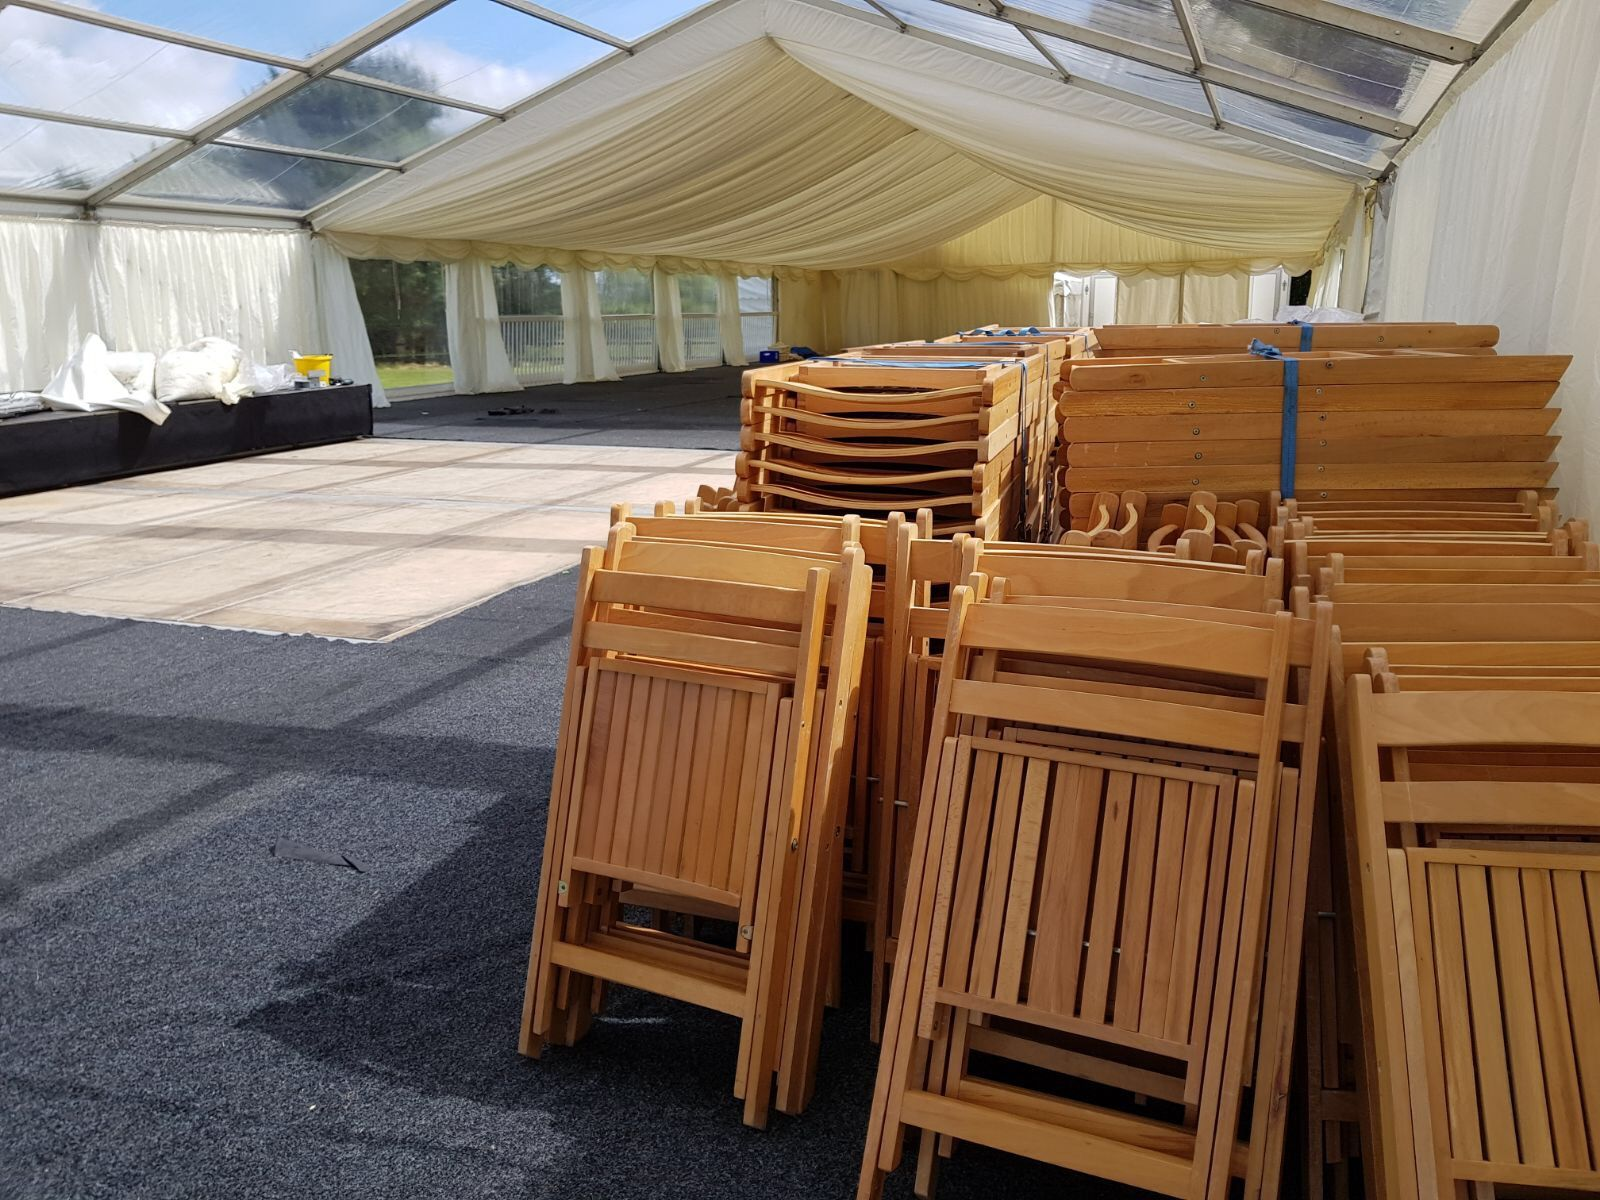 Our Folding Wooden Chairs were basked in sunlight in this summery